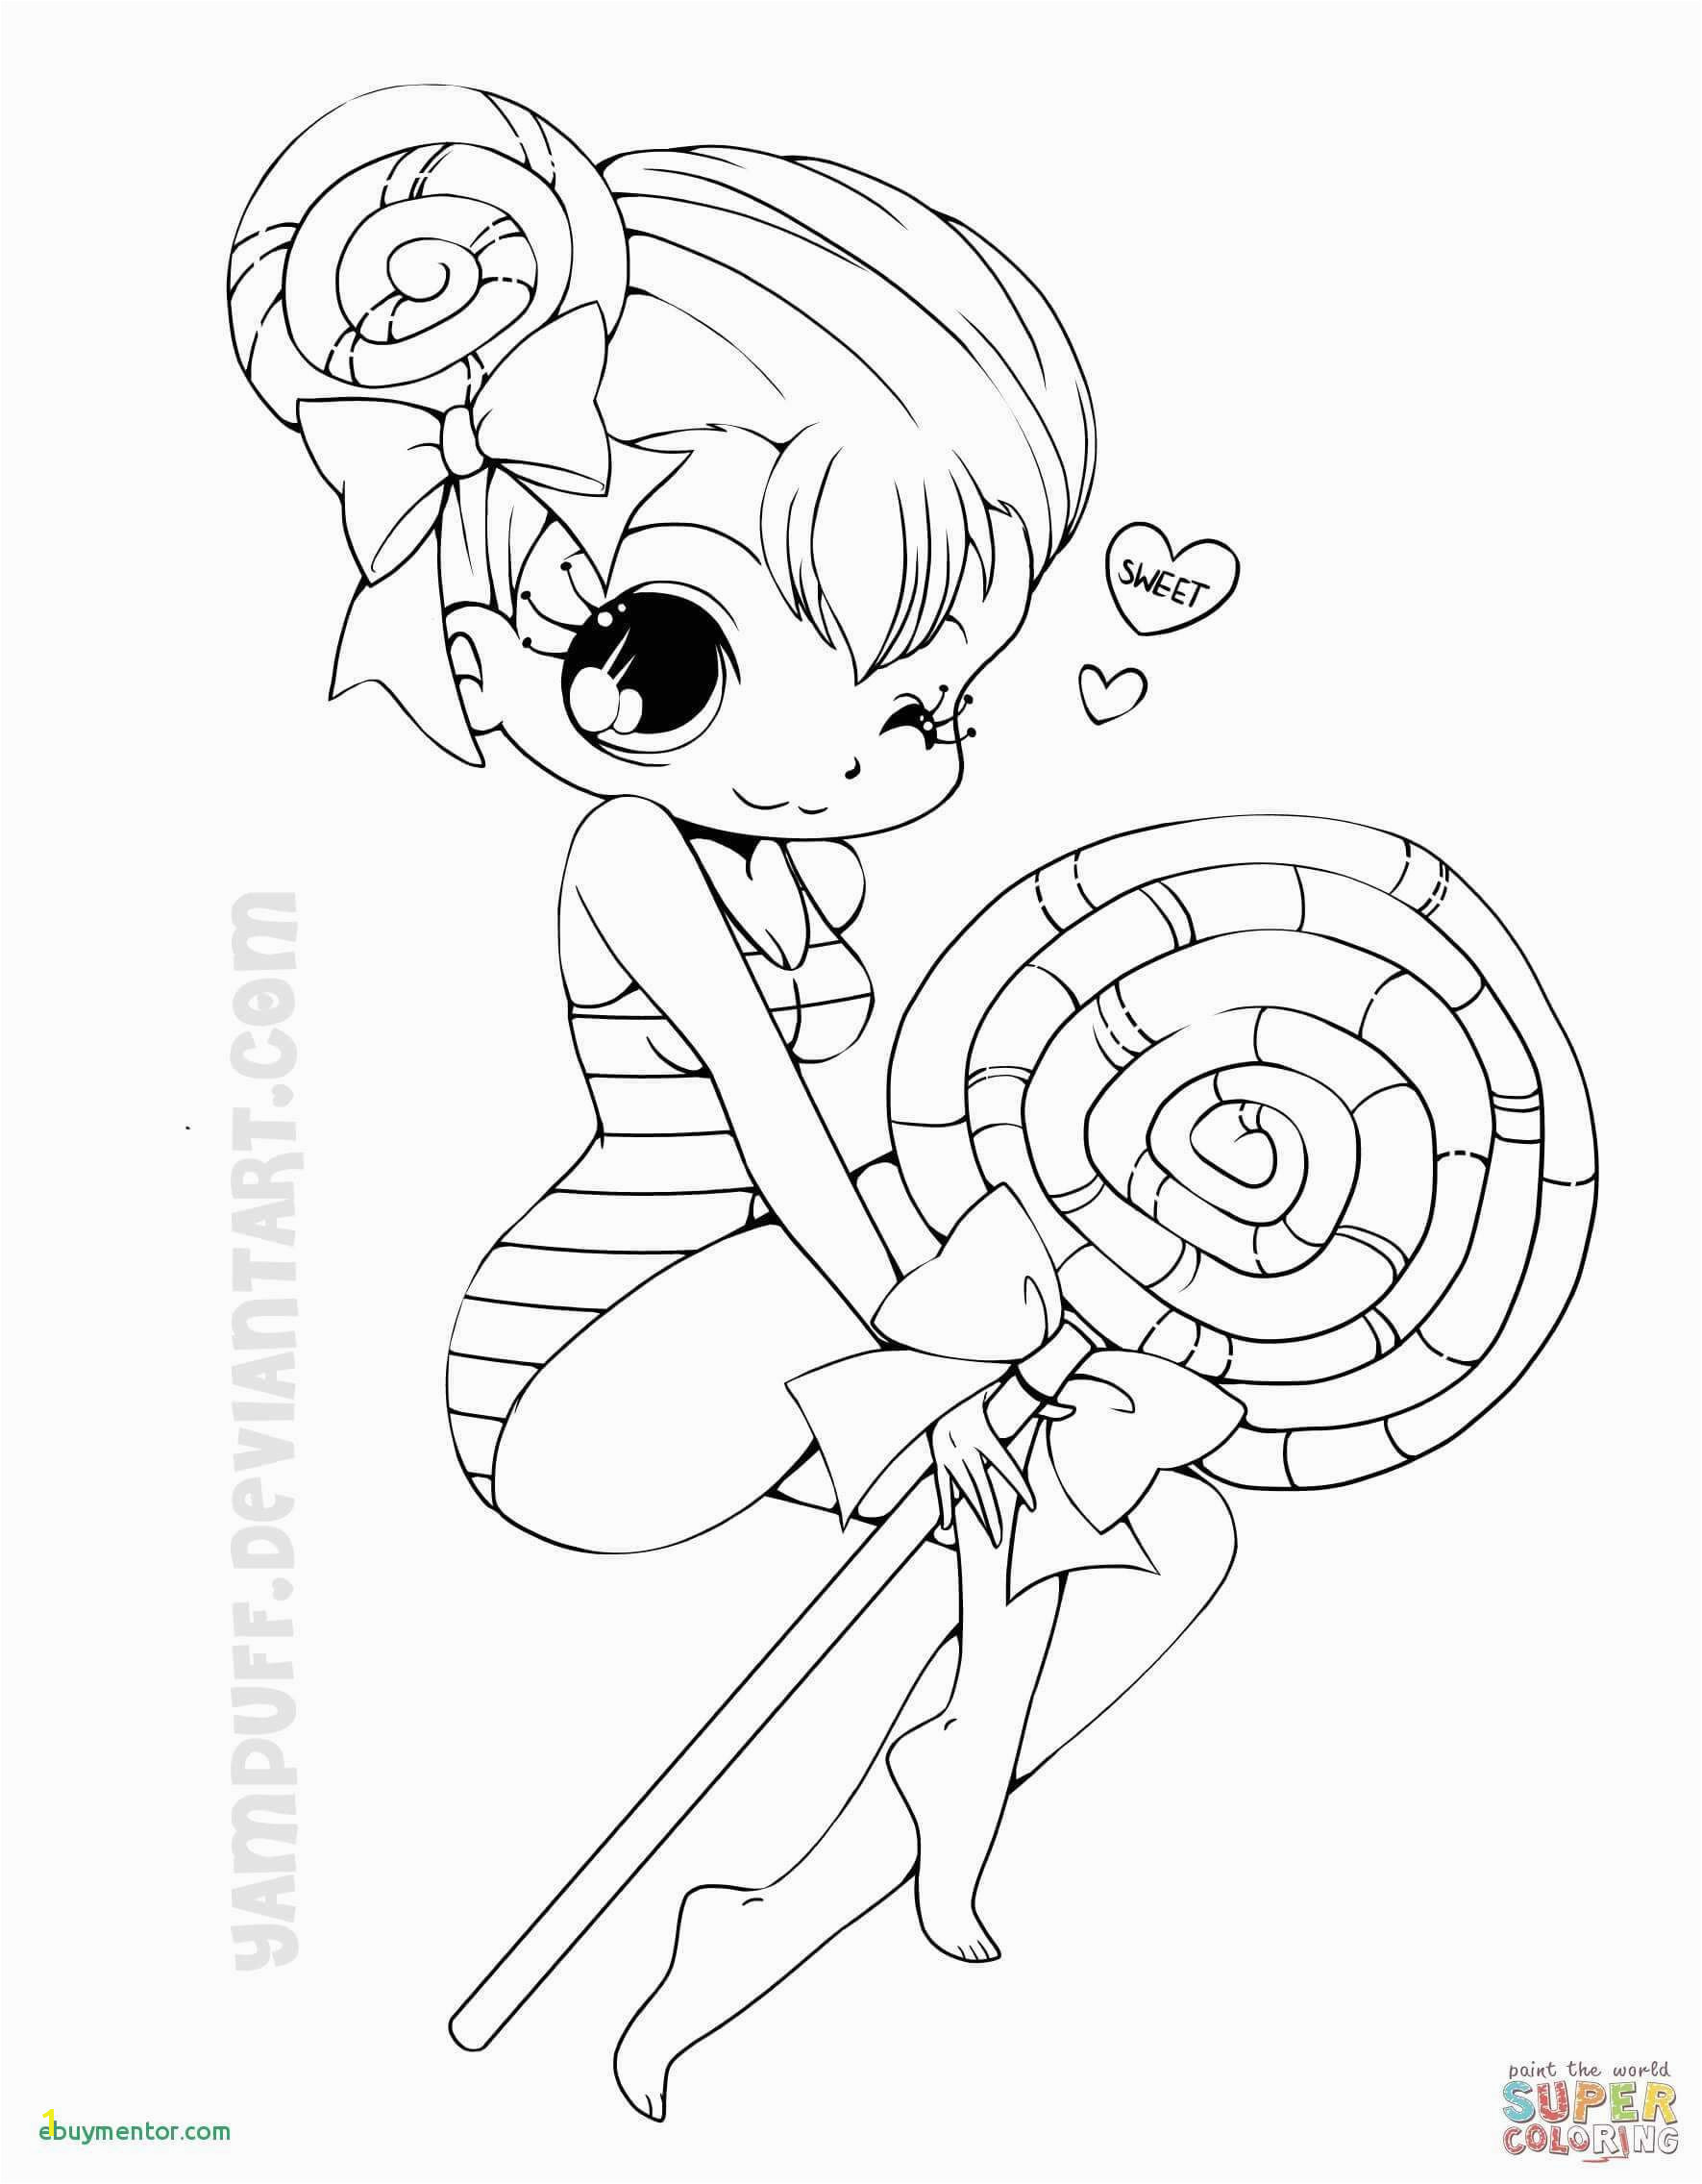 Cool Anime Girl Coloring Pages Tiana Coloring Pages Download thephotosync